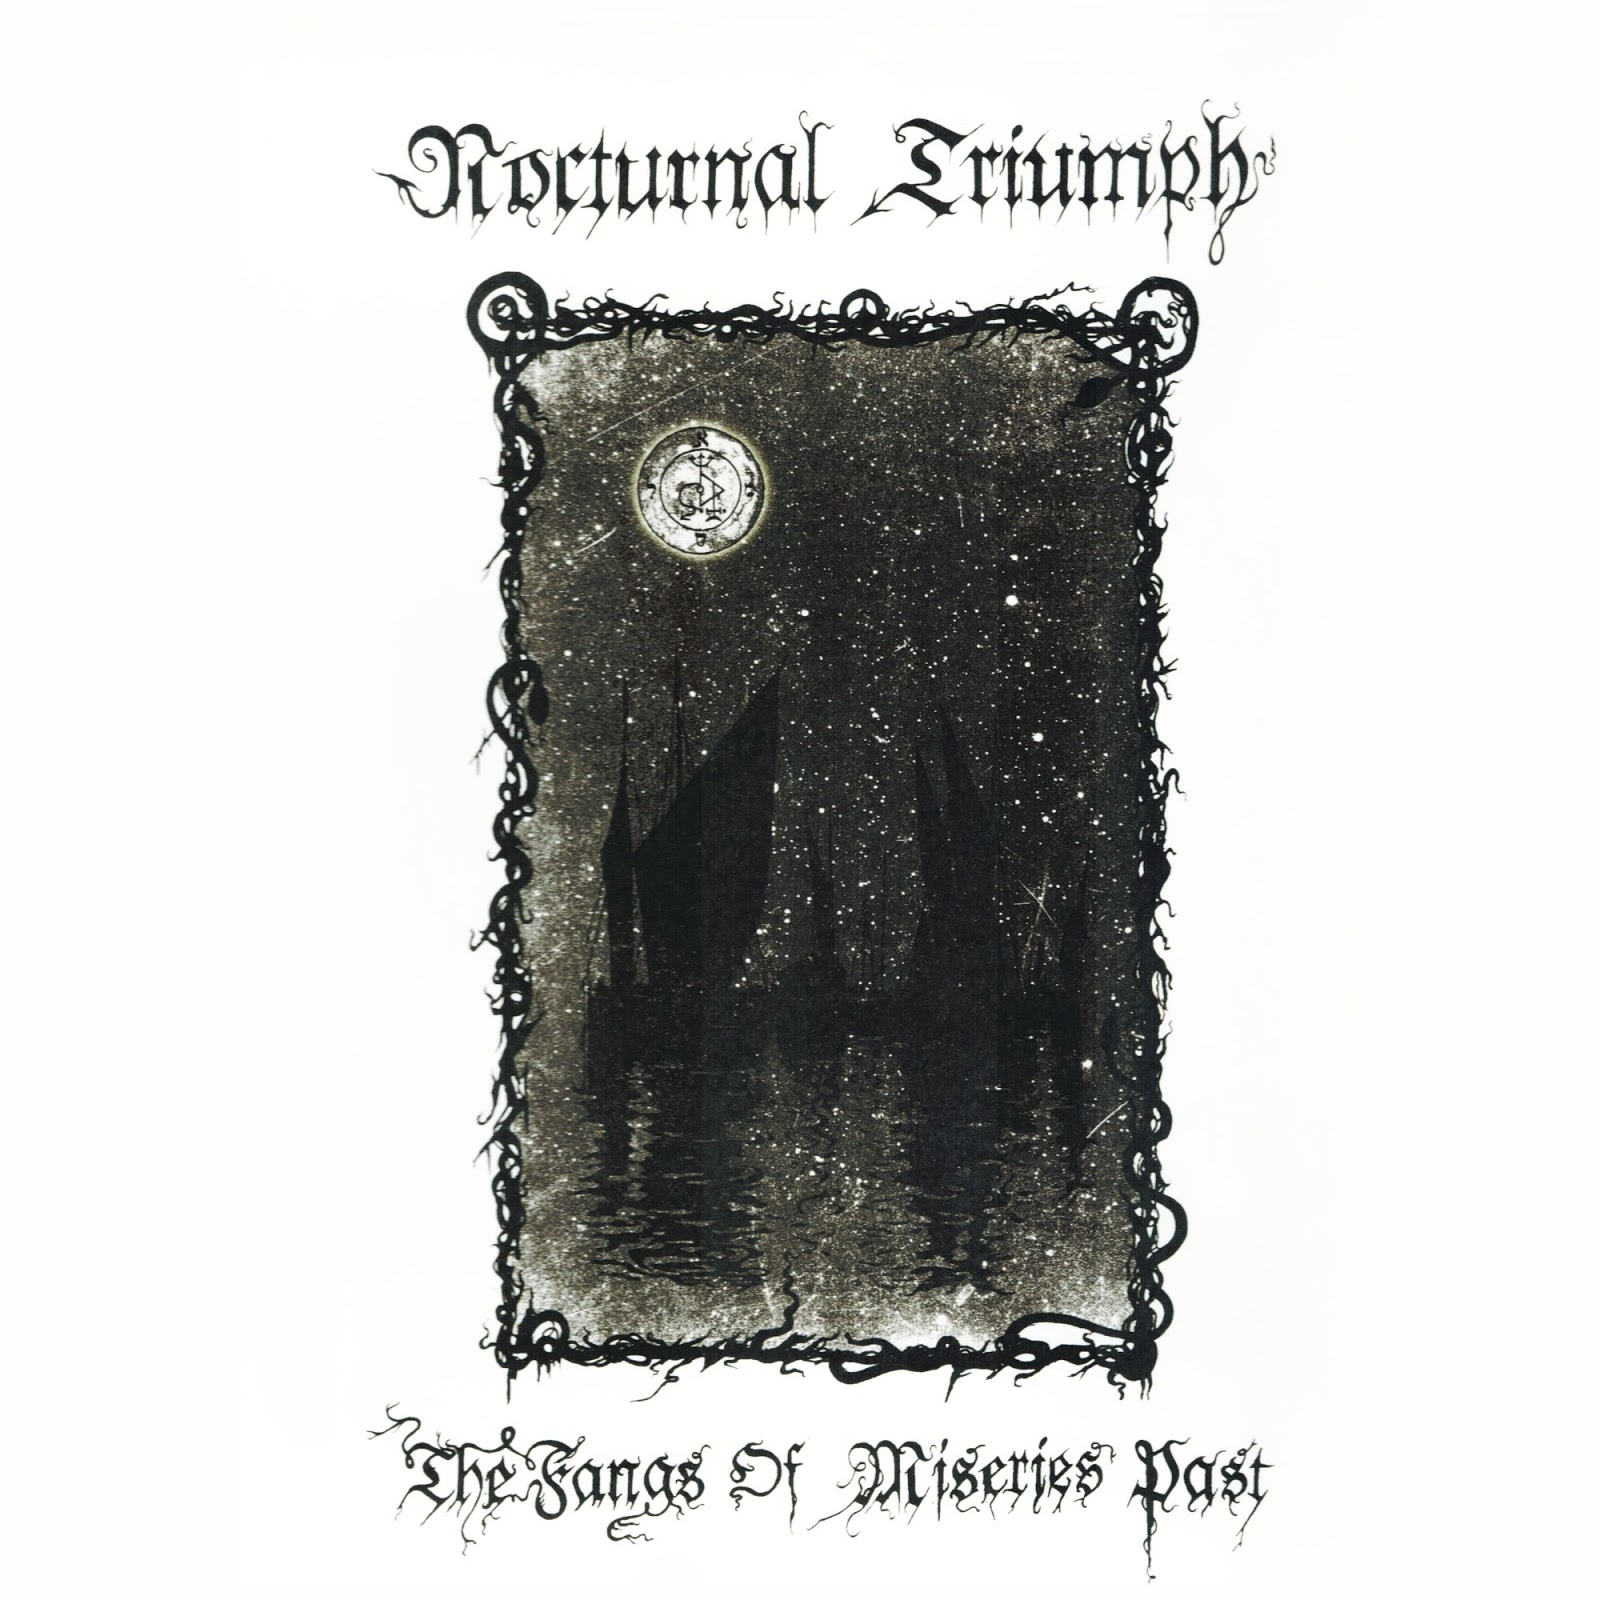 7fbbb1e6aef mortuusinsomnis777: Nocturnal Triumph - The Fangs Of Miseries Past